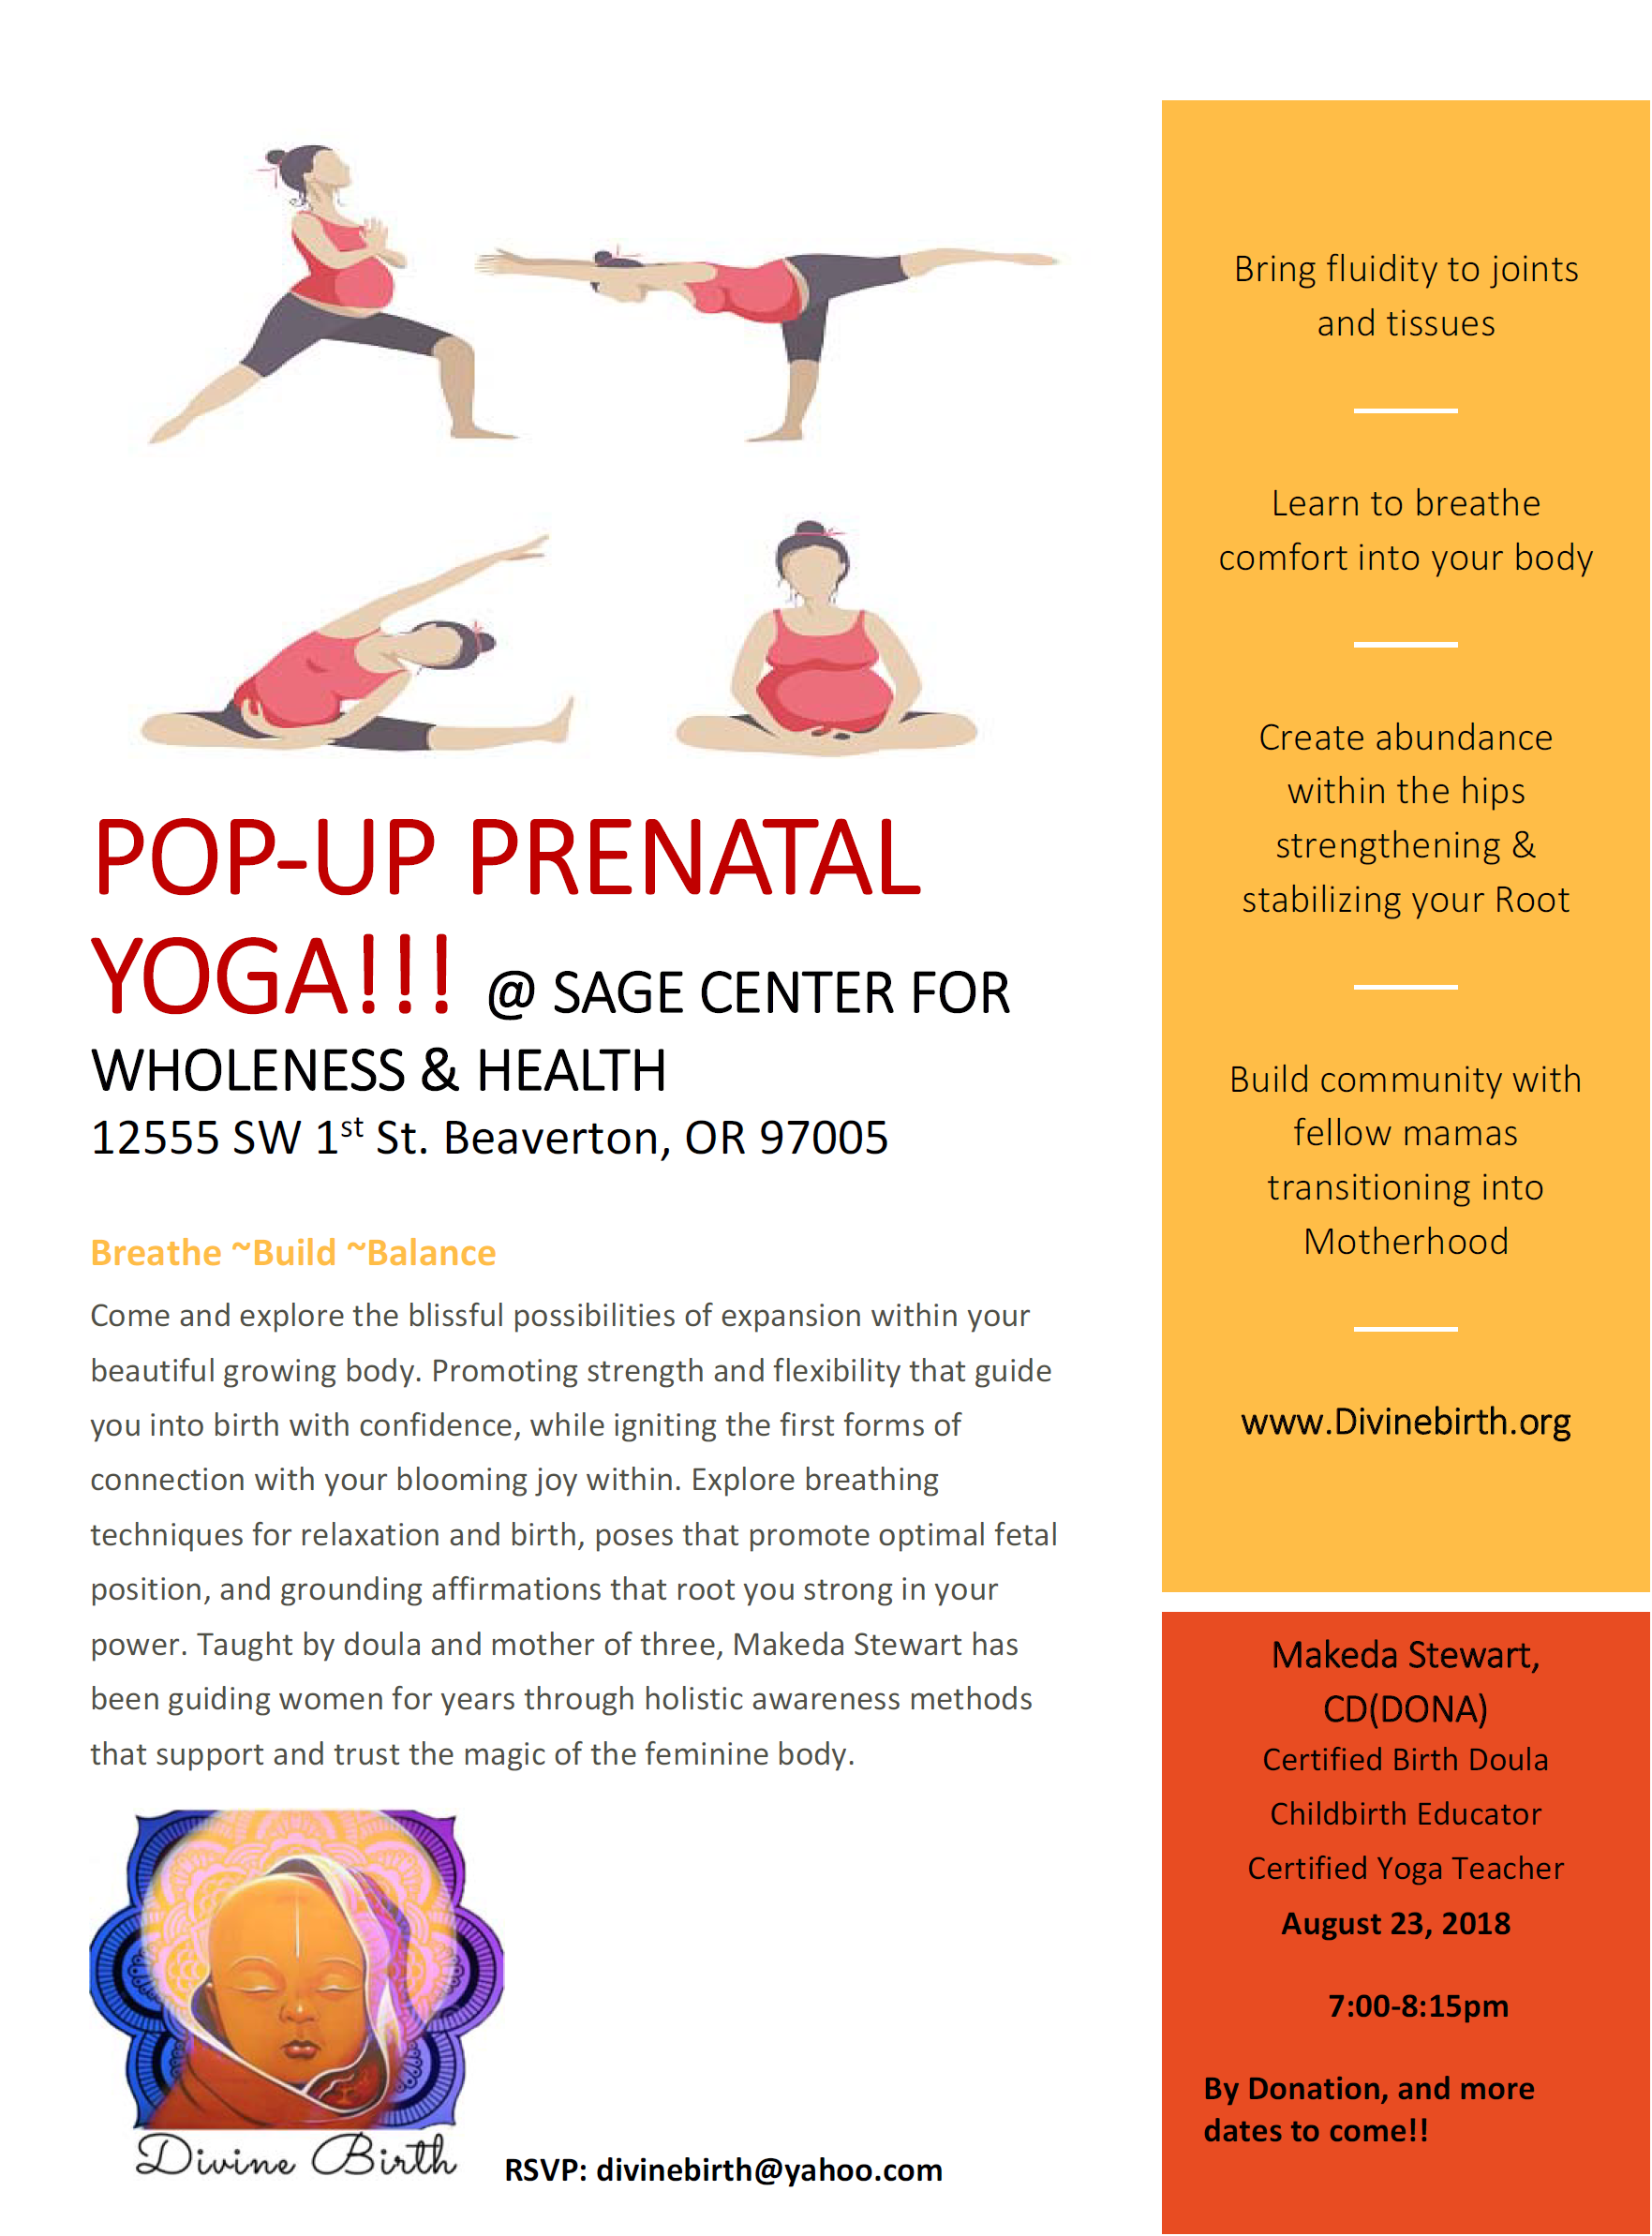 Pop-Up Prenatal Yoga